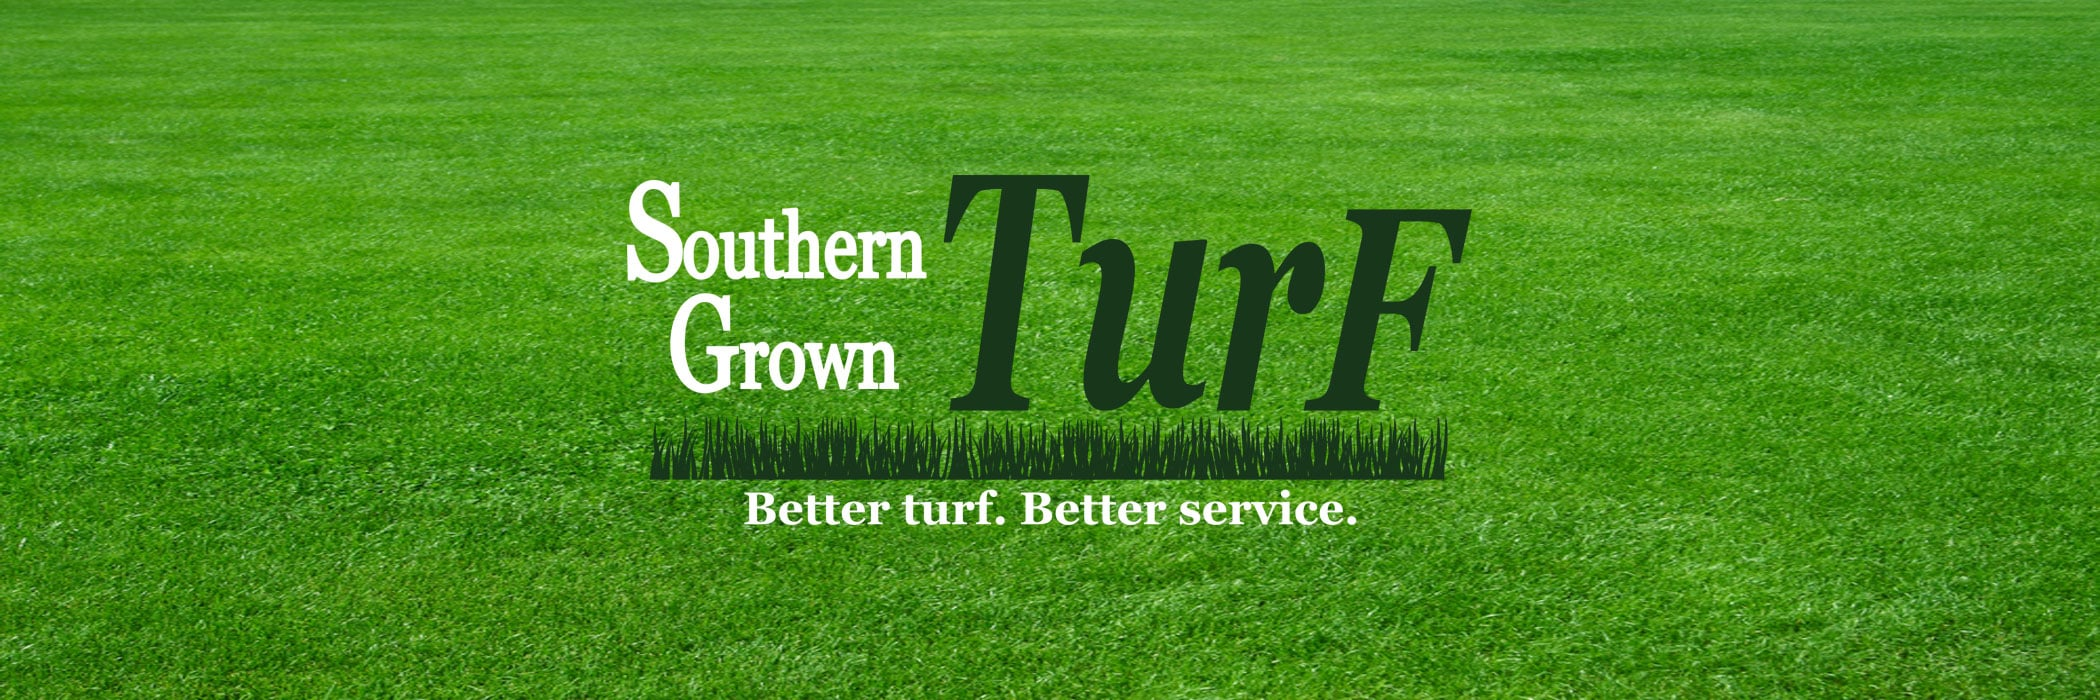 Southern Grown Turf lawn banner